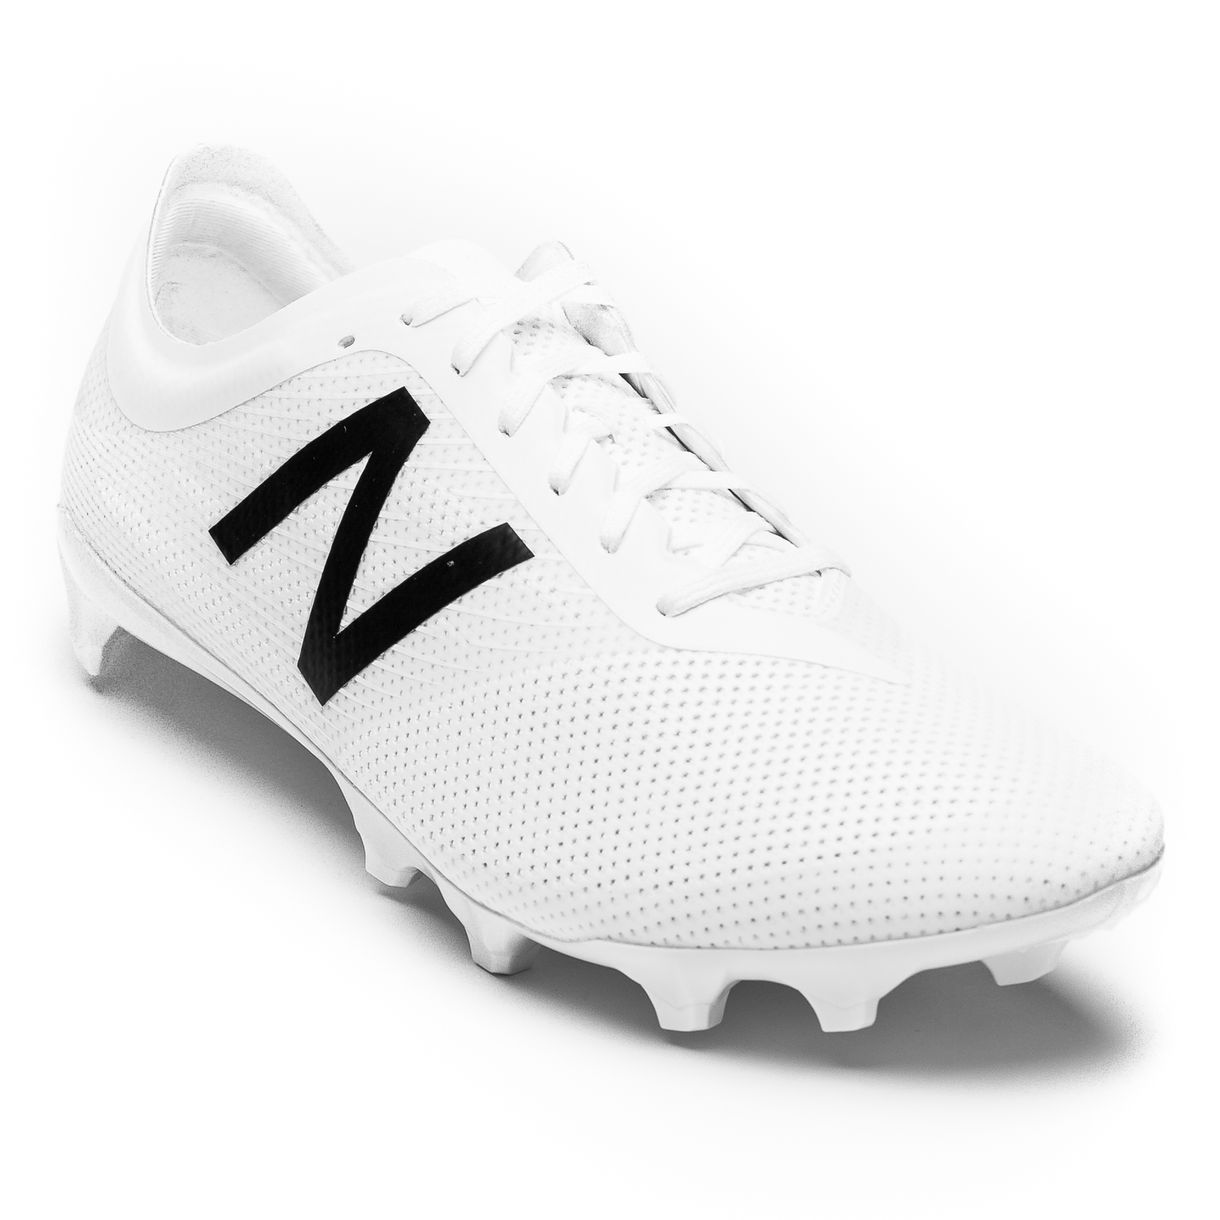 4133d968ec13 ireland new balance football boots black and white 0bb4e 1719b; coupon for  click to enlarge image newbalancefuron 20profgblackoutblackwhitee c4357  de654